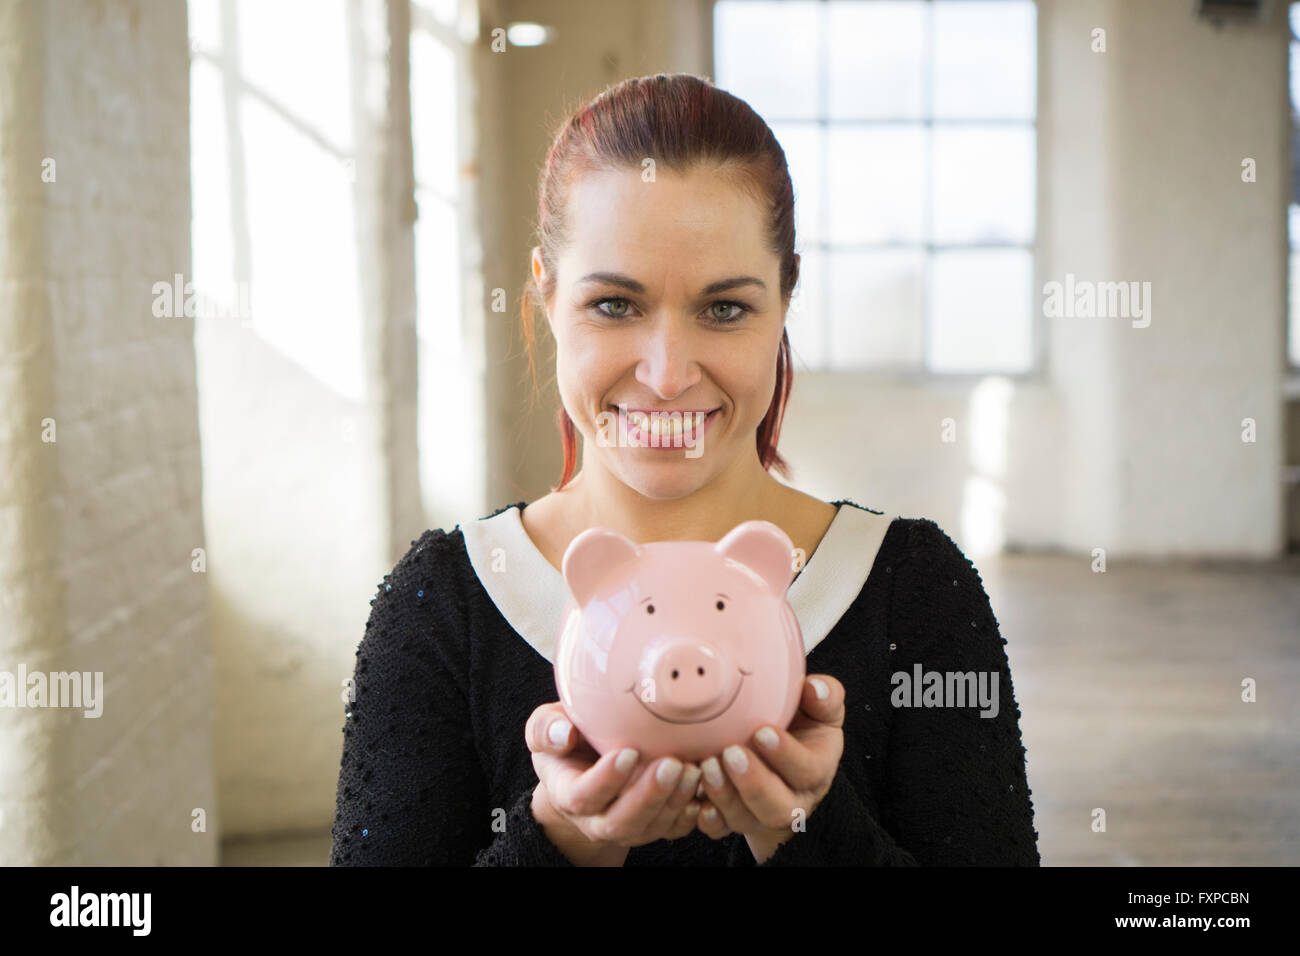 Happy woman holding a piggy bank smiling - Stock Image